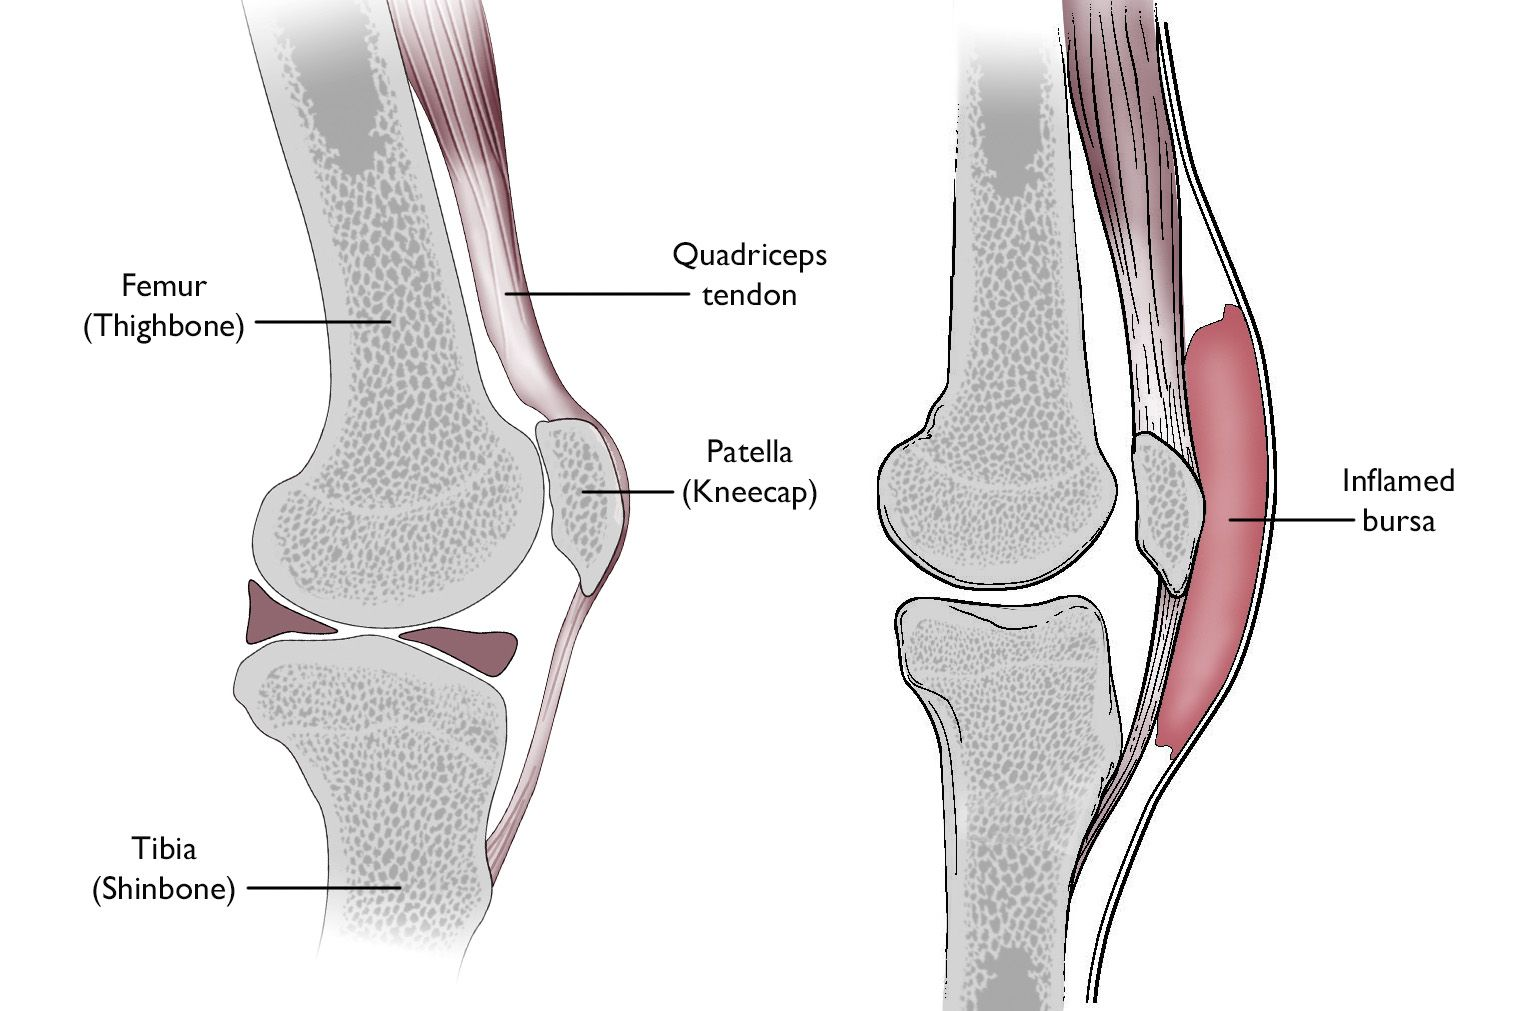 Normal knee anatomy including the bursa involved in prepatellar bursitis